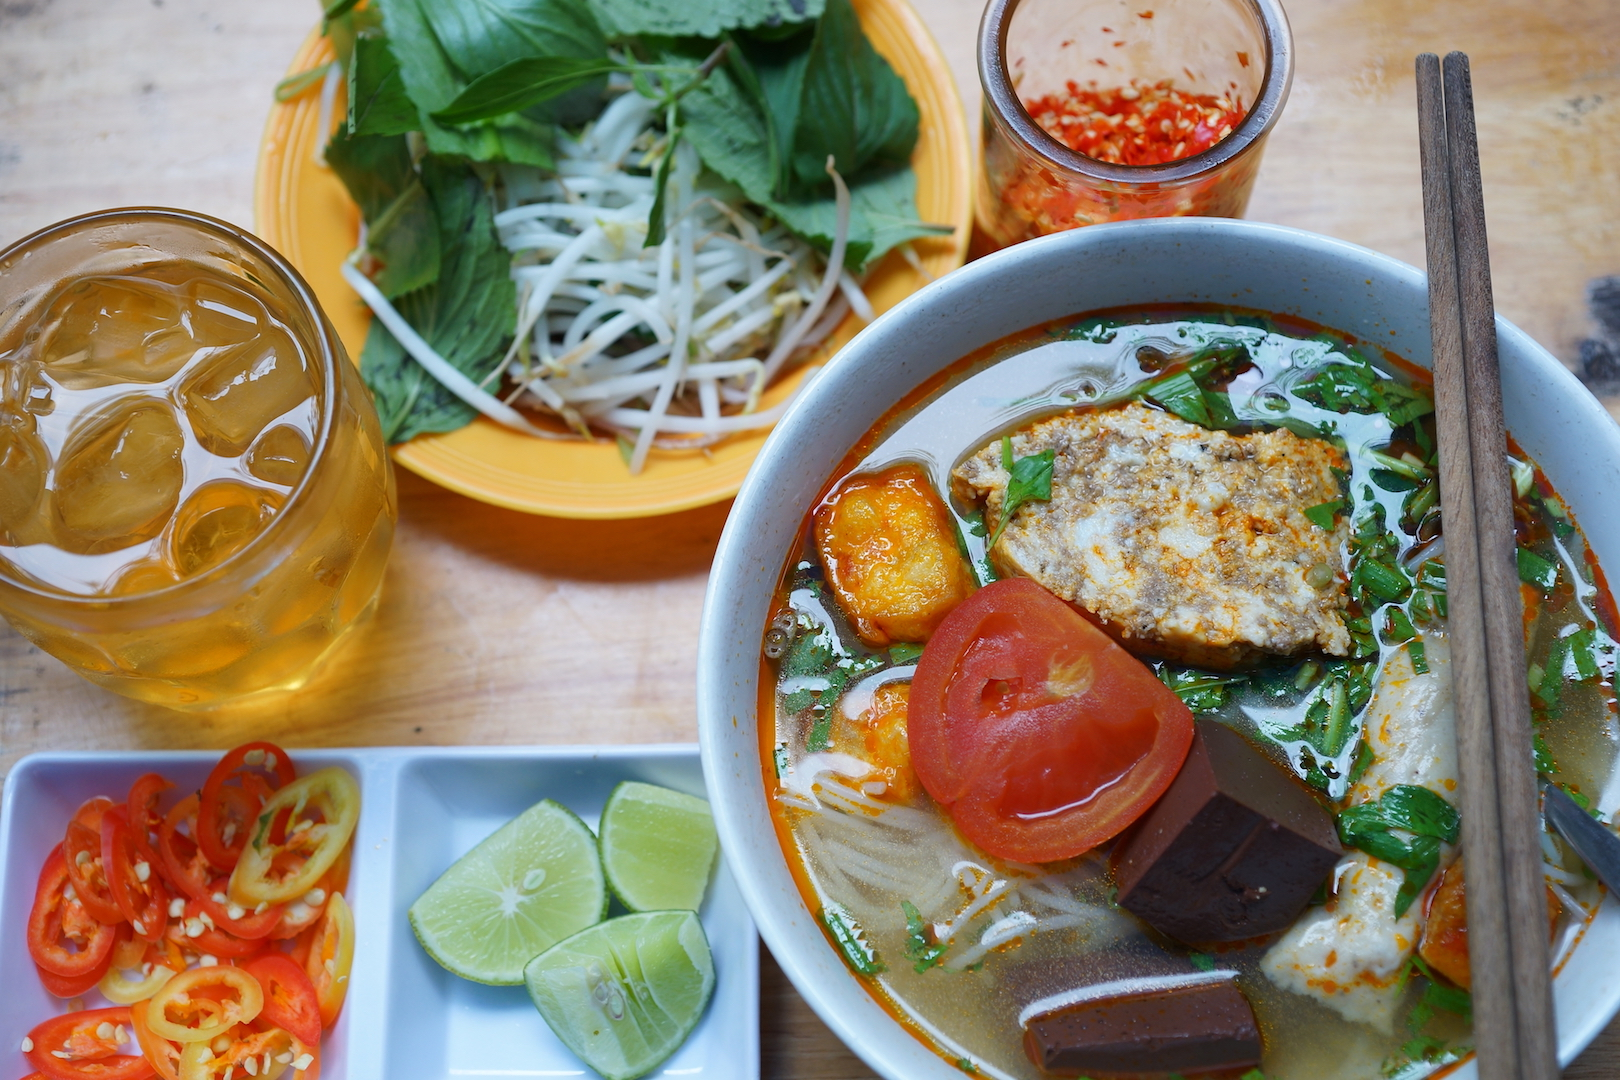 Among many noodle dishes in Saigon, 'bun rieu' exactly is what the doctor ordered